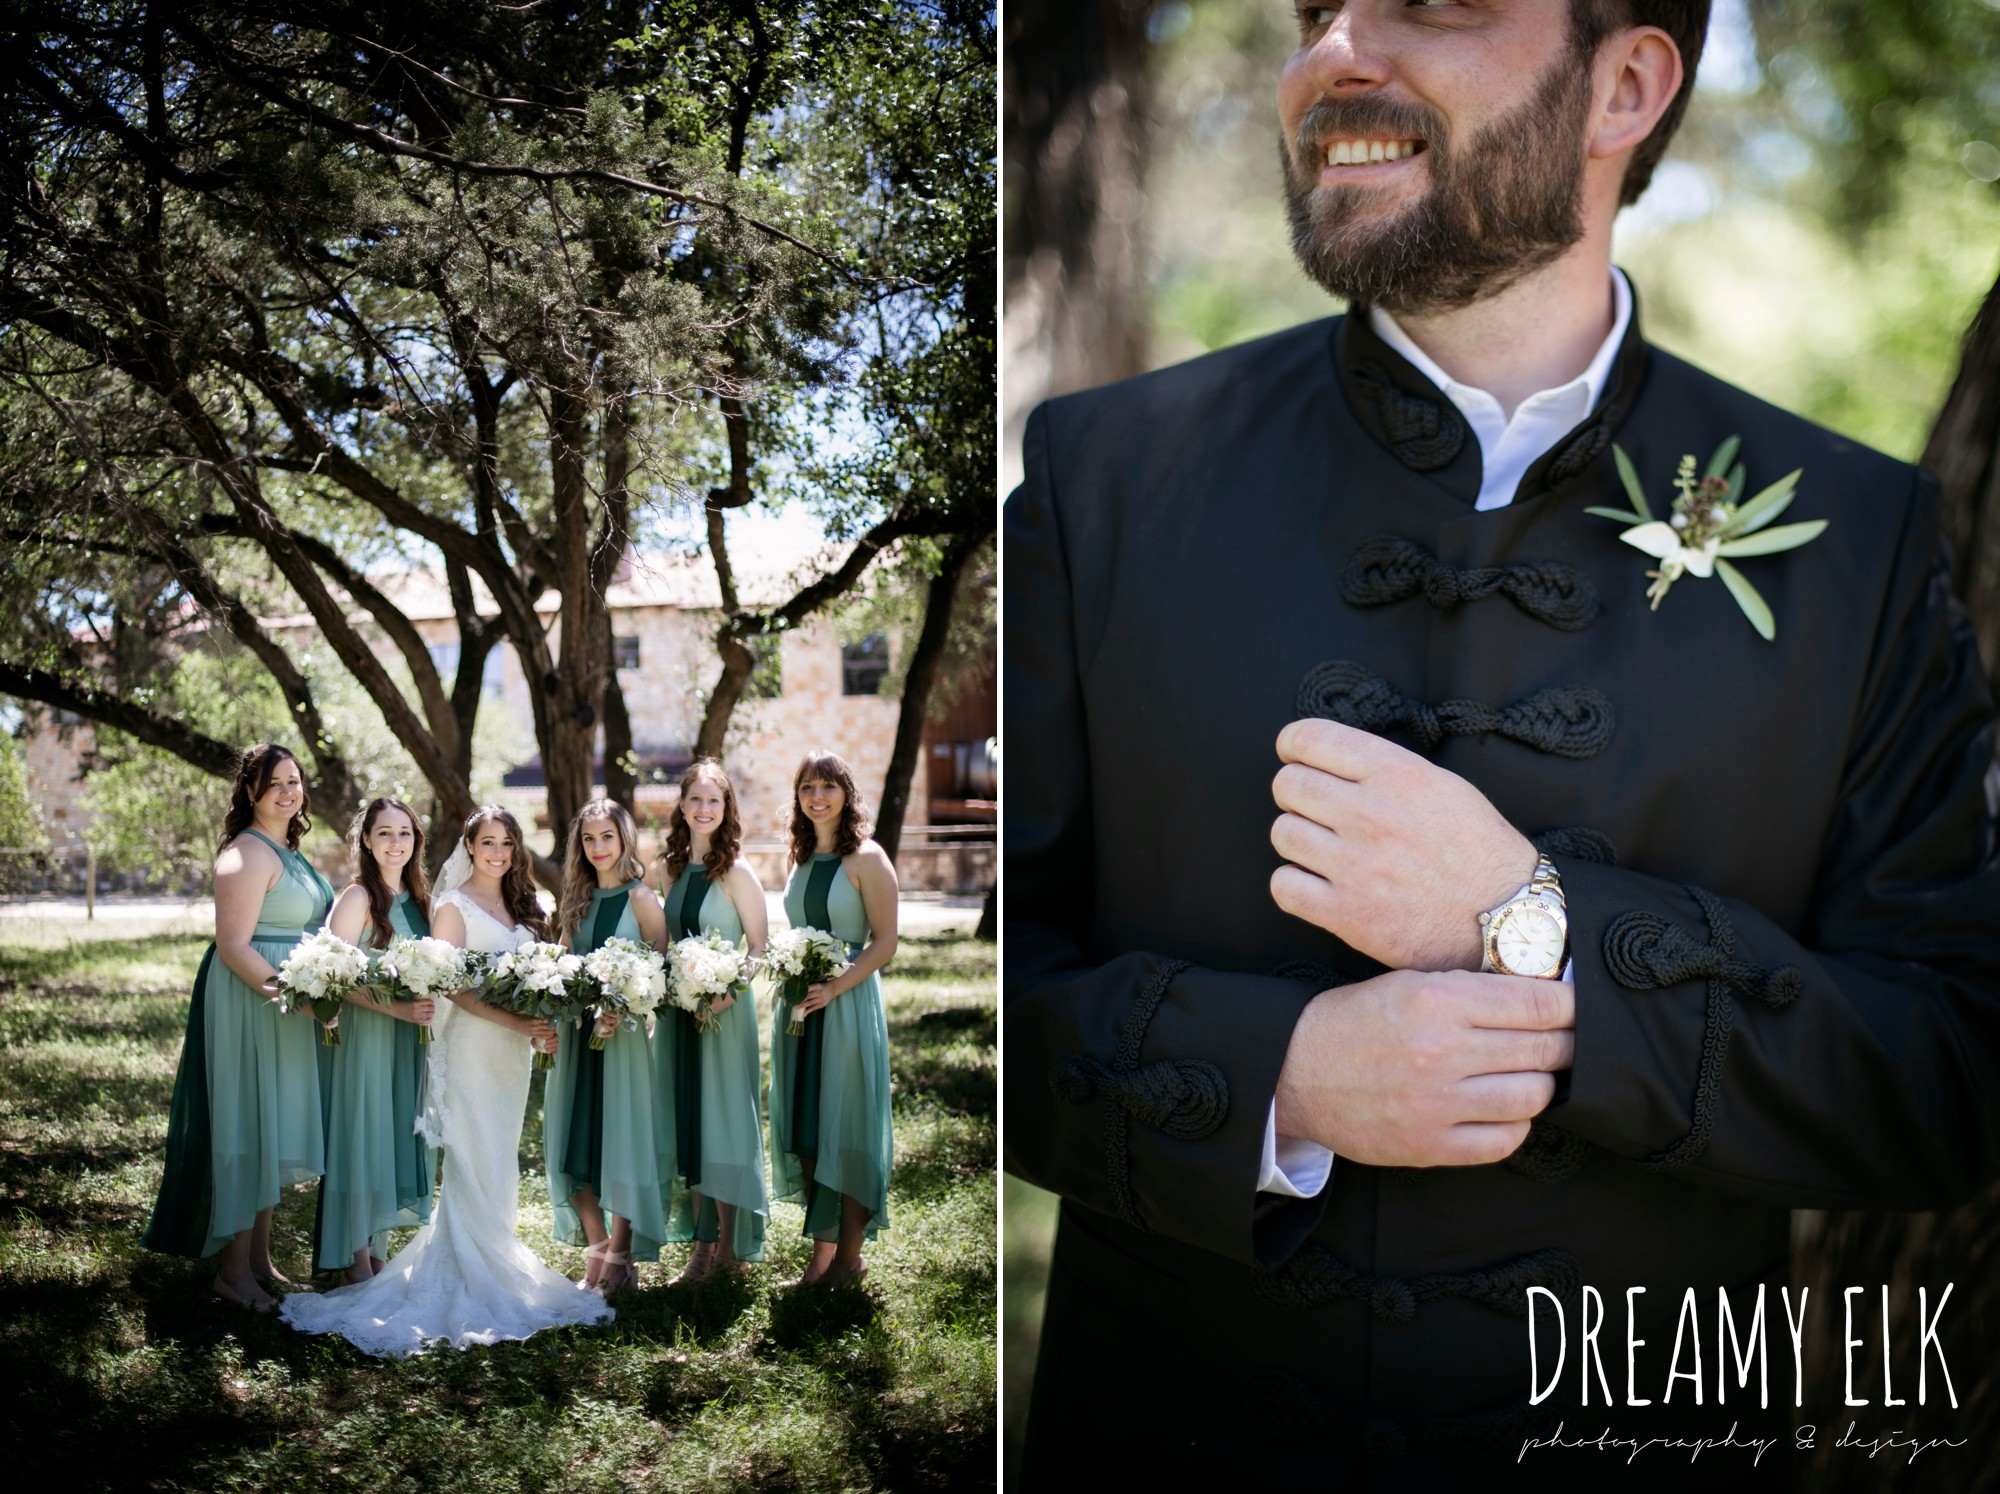 groom, traditional hungarian tux, green bridesmaids dresses, mod cloth, lace wedding dress, lace wedding veil, white wedding bouquets, outdoor spring april wedding photo, chapel dulcinea ceremony, thurman's mansion, dripping springs, texas {dreamy elk photography and design}